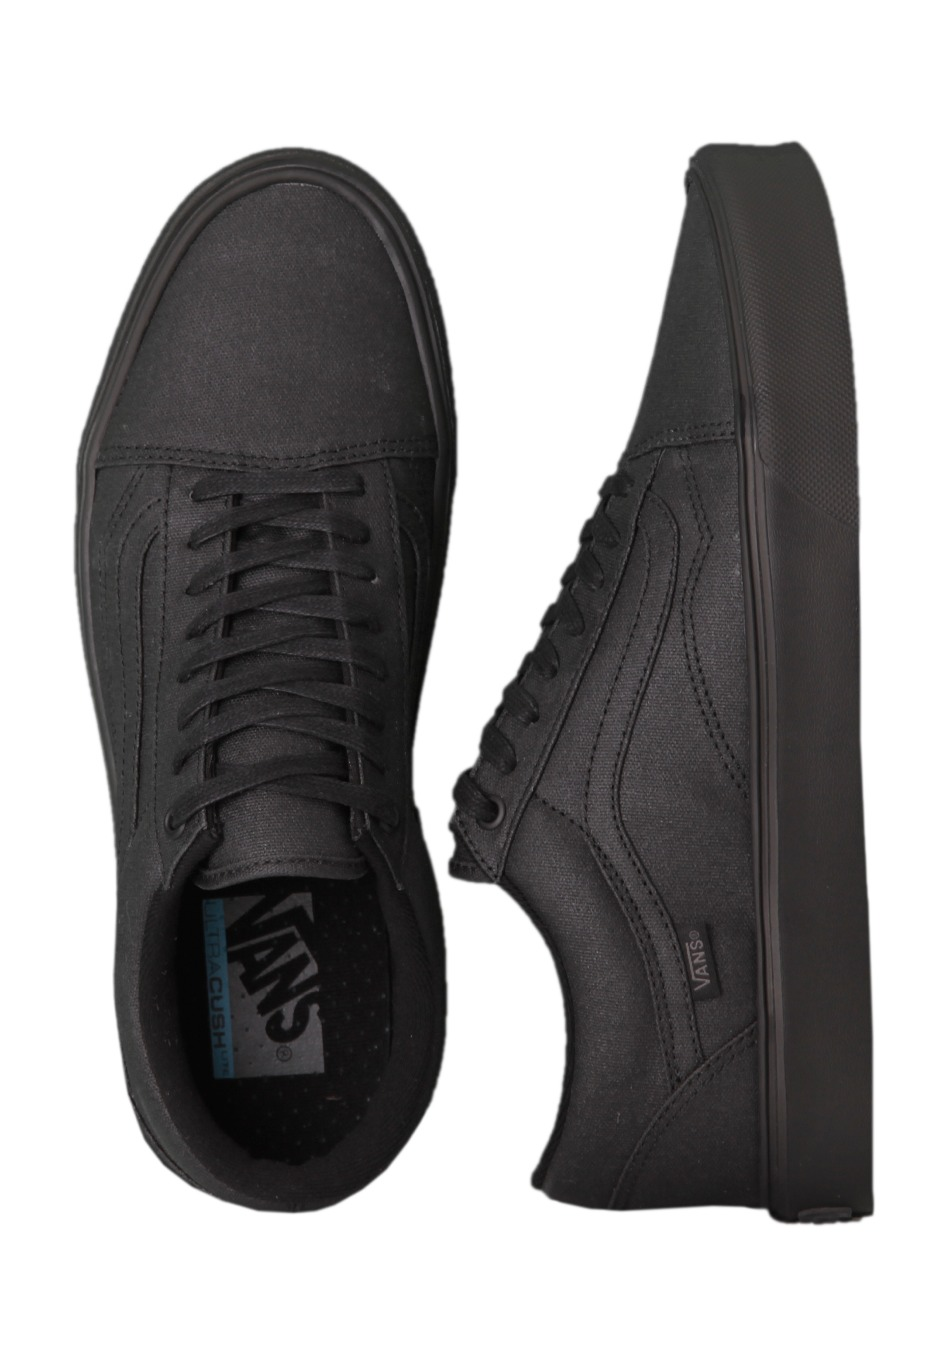 53a3986012 Vans - Old Skool Lite Black Waxed Canvas - Girl Shoes - Impericon.com UK